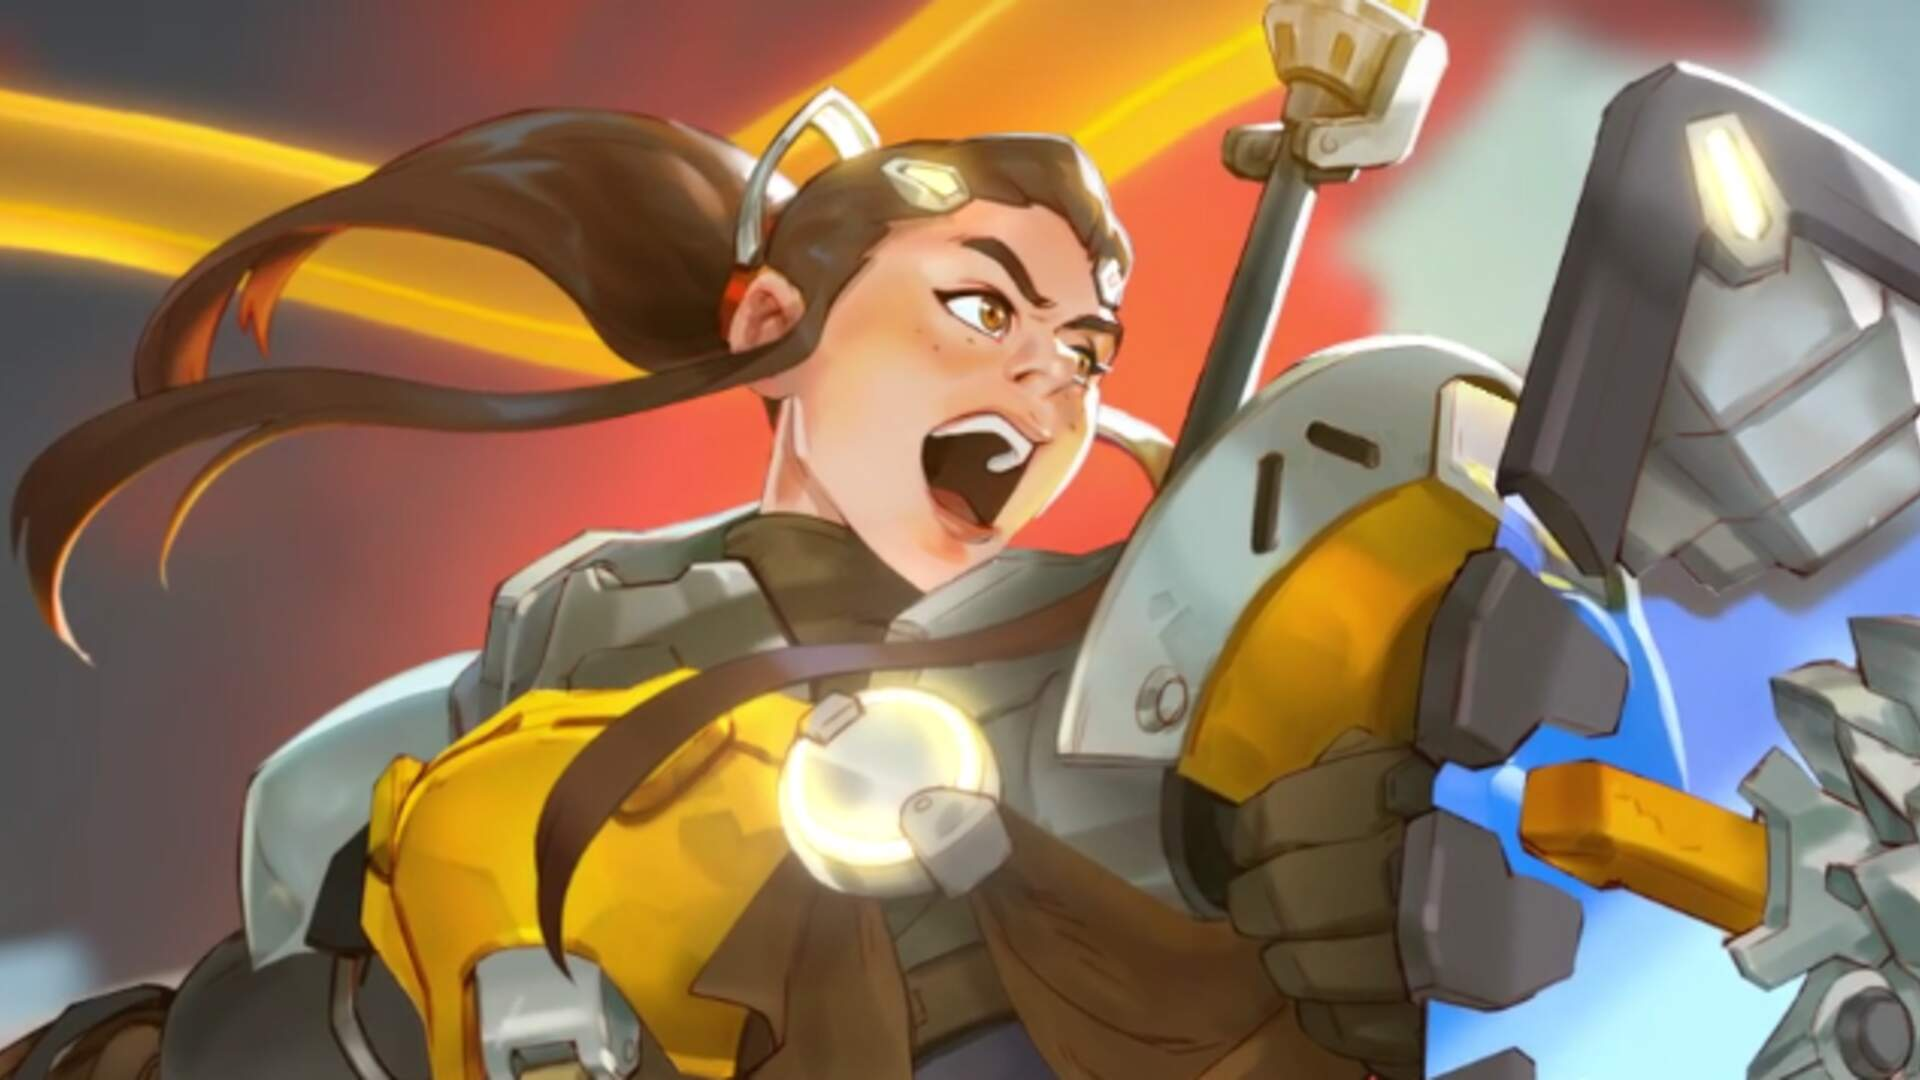 Overwatch Free Weekend Starts Tomorrow Ahead of the Overwatch League Grand Finals